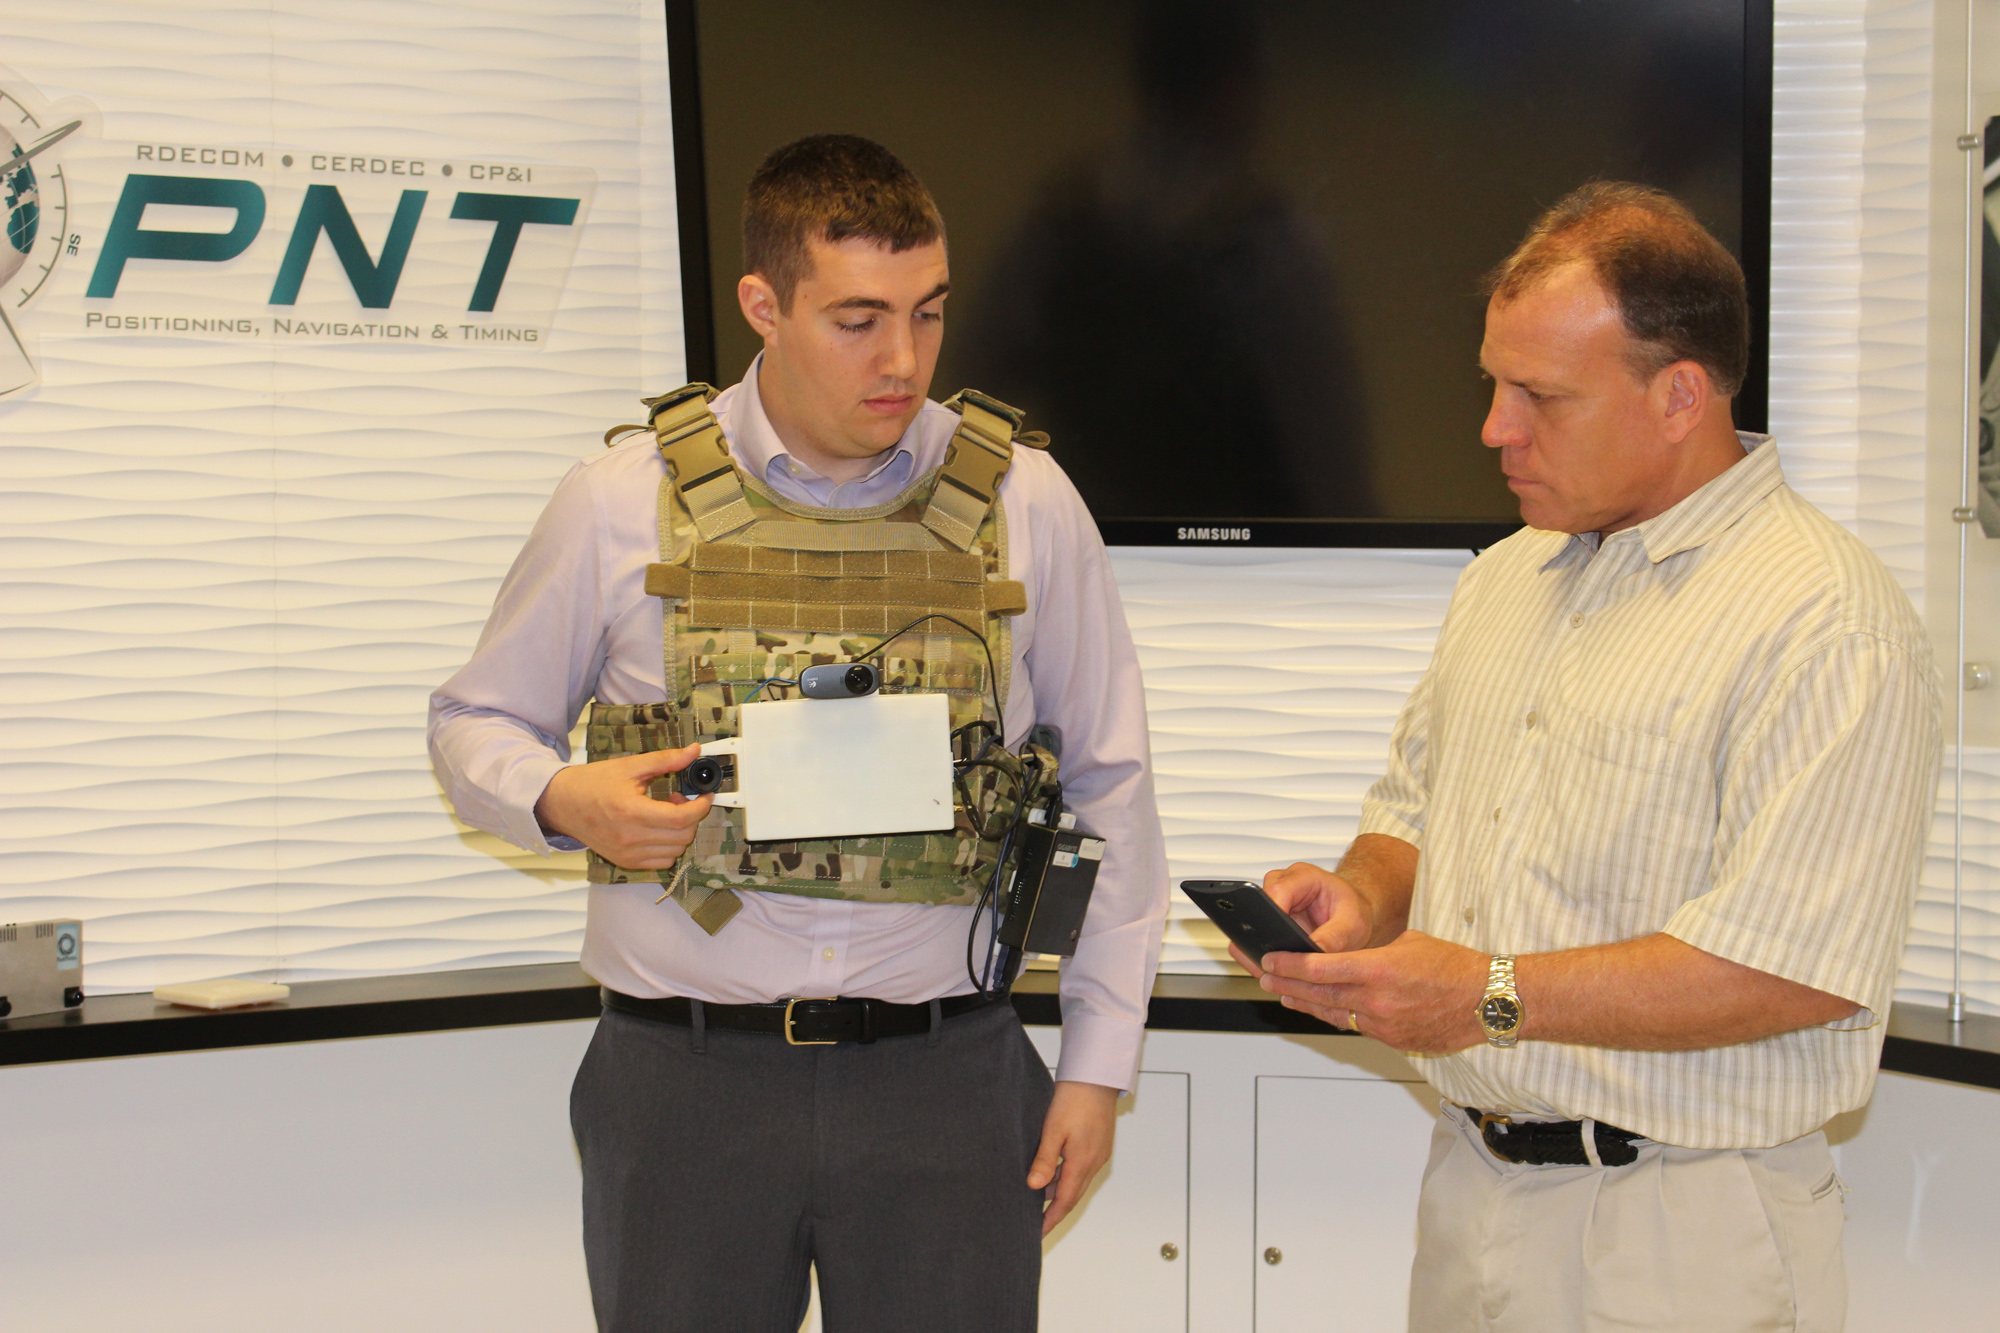 CERDEC engineers Eric Bickford, left, and Dr. Gary Katulka demonstrate a laboratory prototype of a vision-aided navigation system for dismounted Soldiers. PNT capabilities aid GPS when its signal becomes degraded or denied due to environmental or adversarial sources. Machine learning could insert intelligence into PNT systems so that Soldiers know which sensors are most reliable under any given circumstance. (U.S. Army photo by Kathryn Bailey, CERDEC)